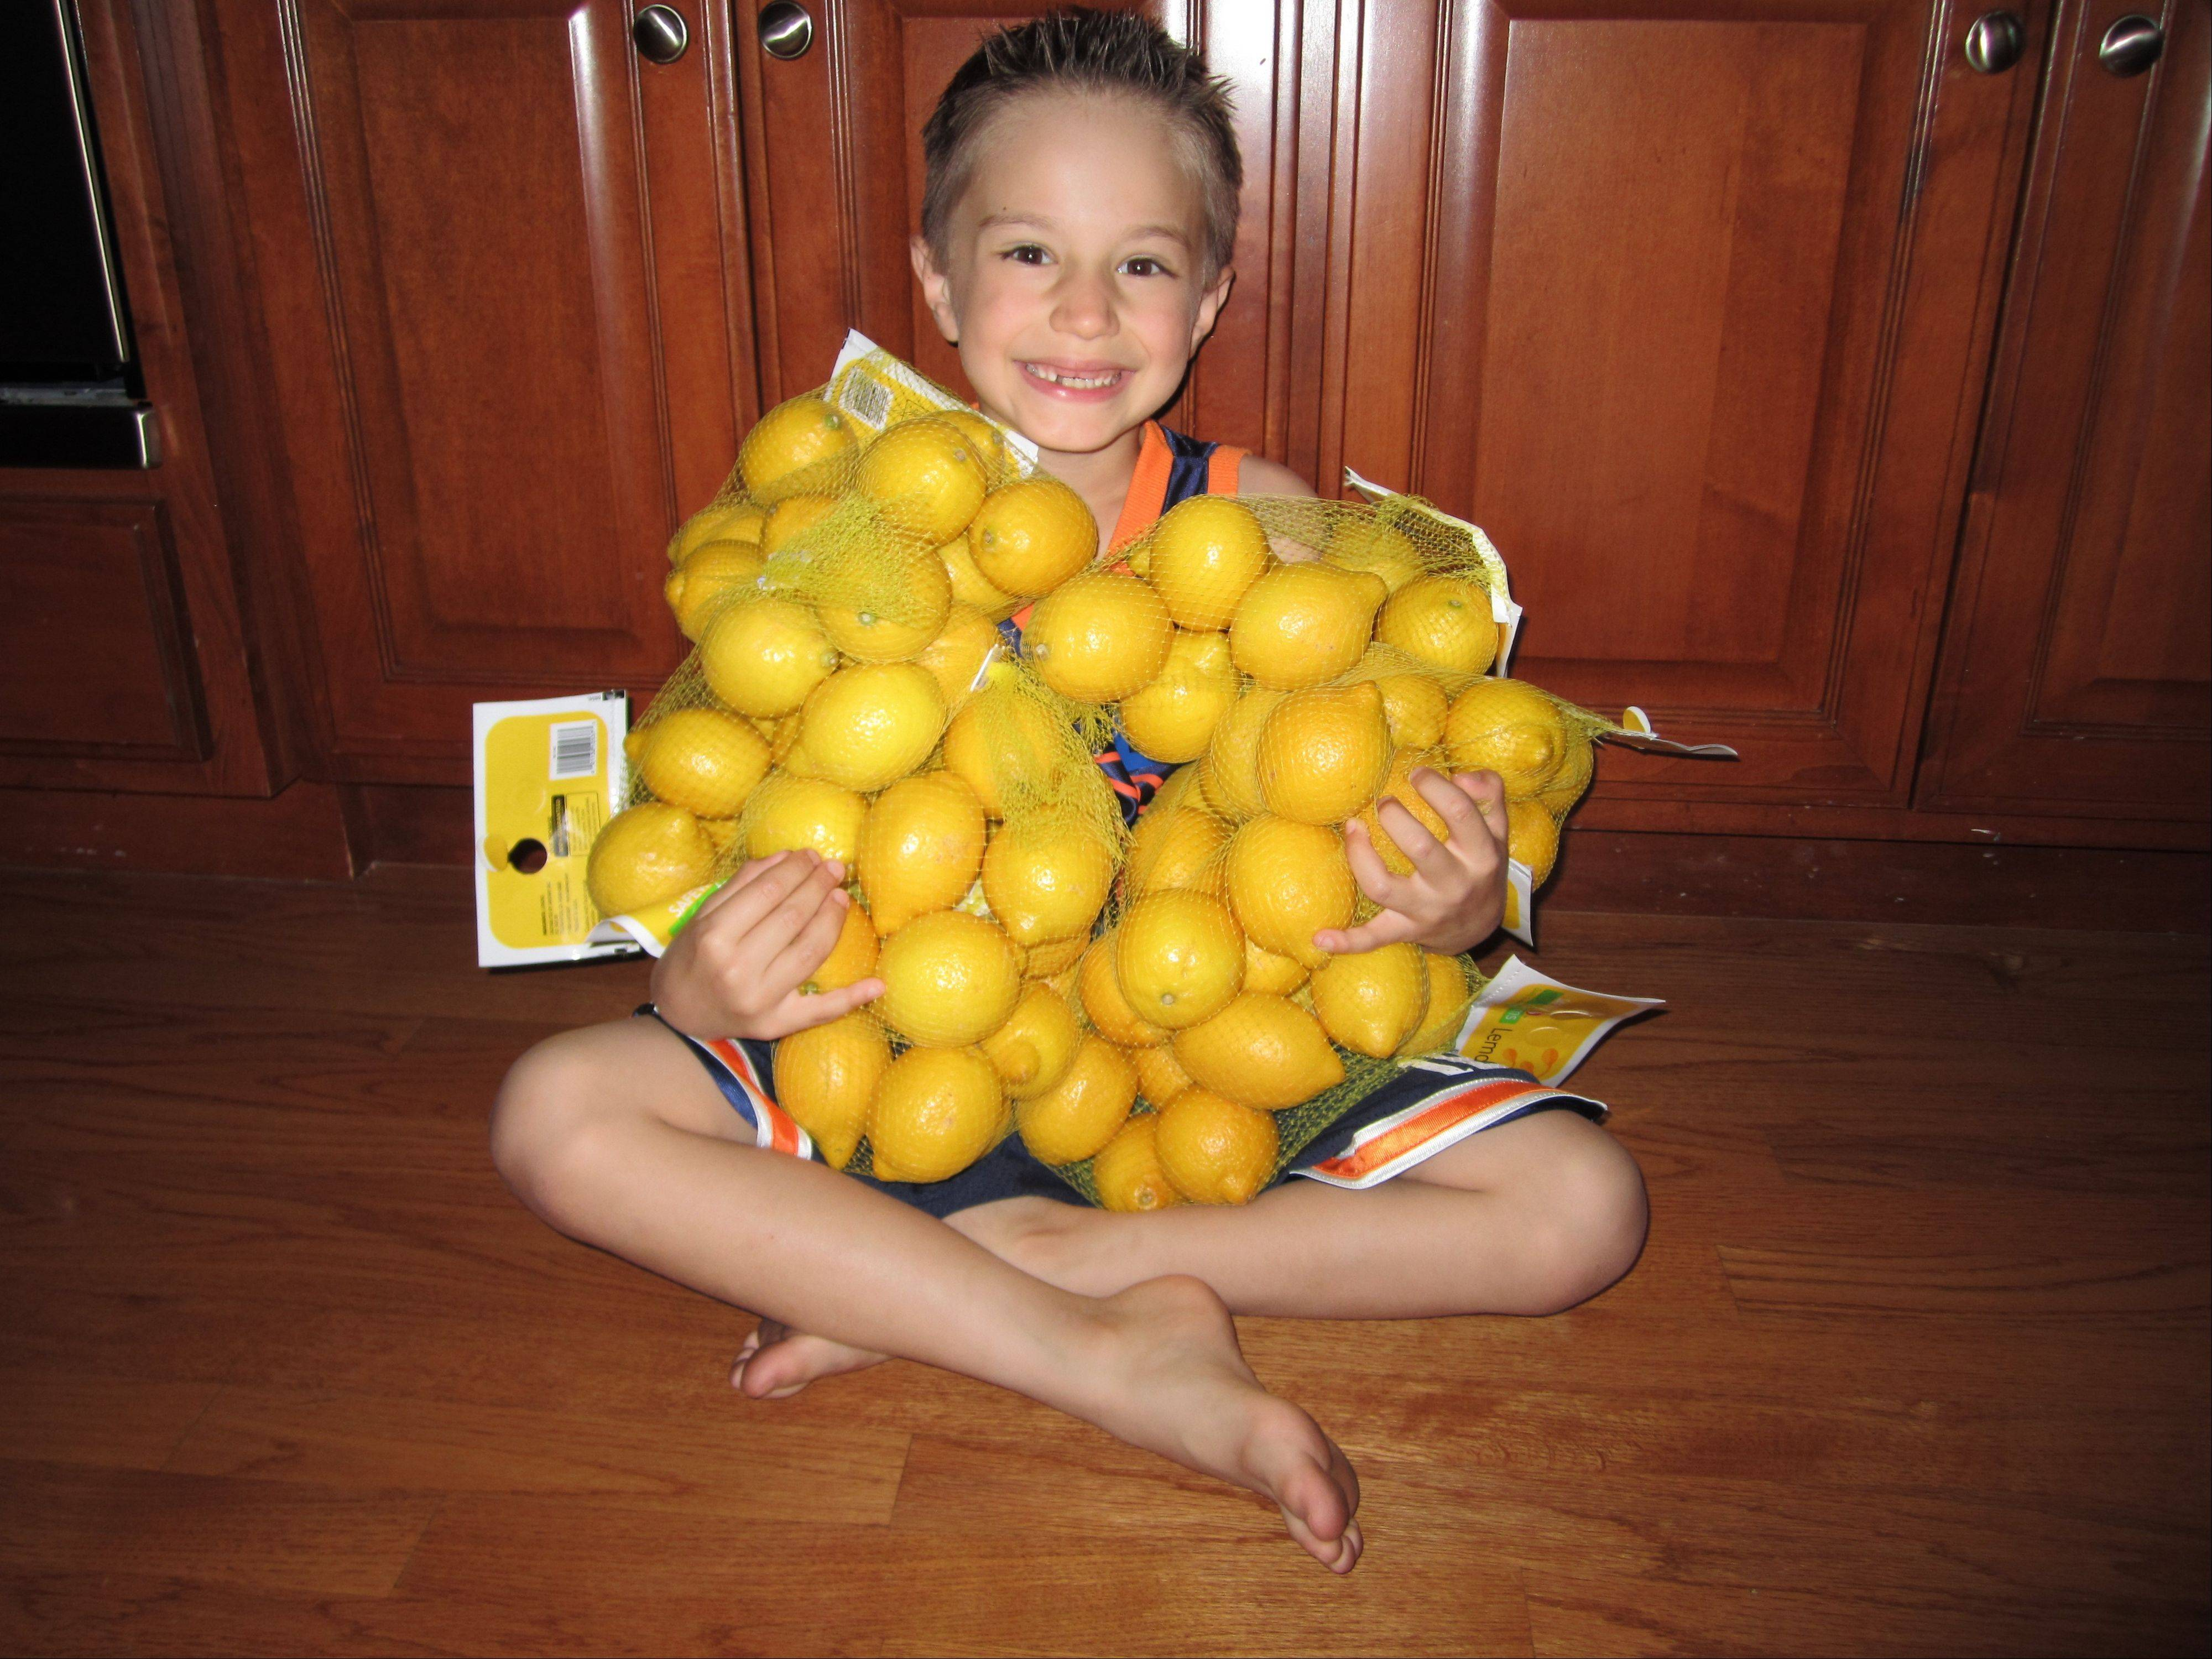 Six-year-old Luke Hasan of Naperville holds the bags of lemons that helped him raise more than $2,100 for the clean water project by opening a LemonAIDE stand.